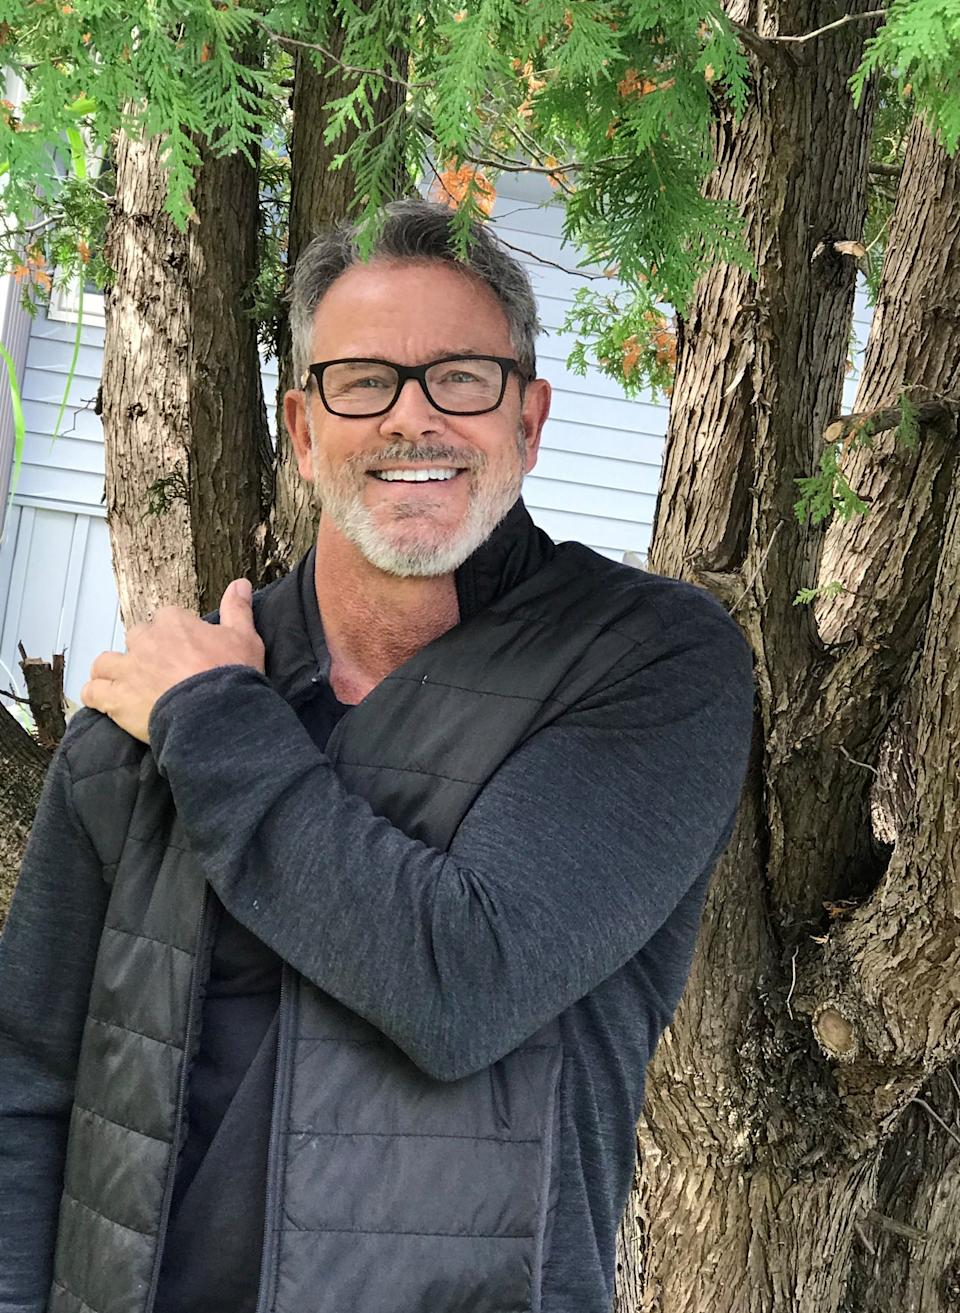 Tom Ernsting, 60, lives part of the year at his home in South Haven, Michigan. He's worked to build a social media presence but has seen scammers steal his image to use in romance scams.